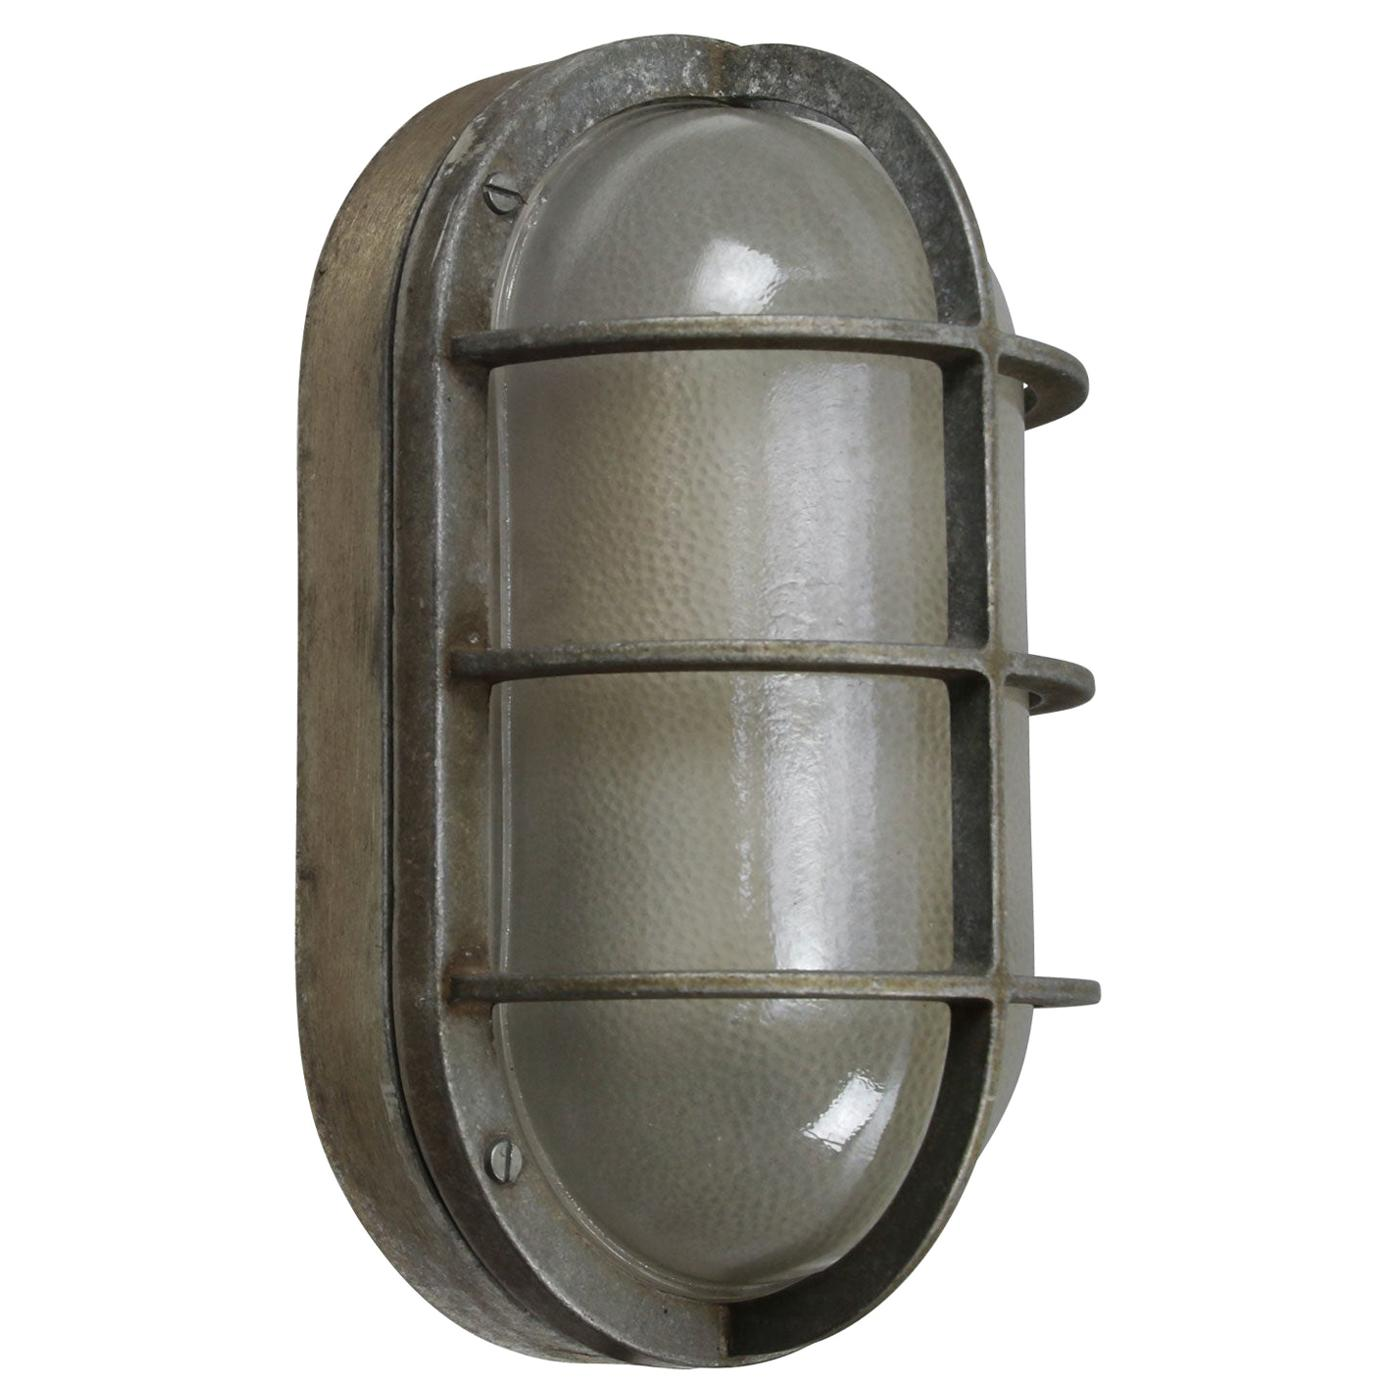 Gray Aluminum Vintage Industrial Frosted Glass Wall Lamps Scones